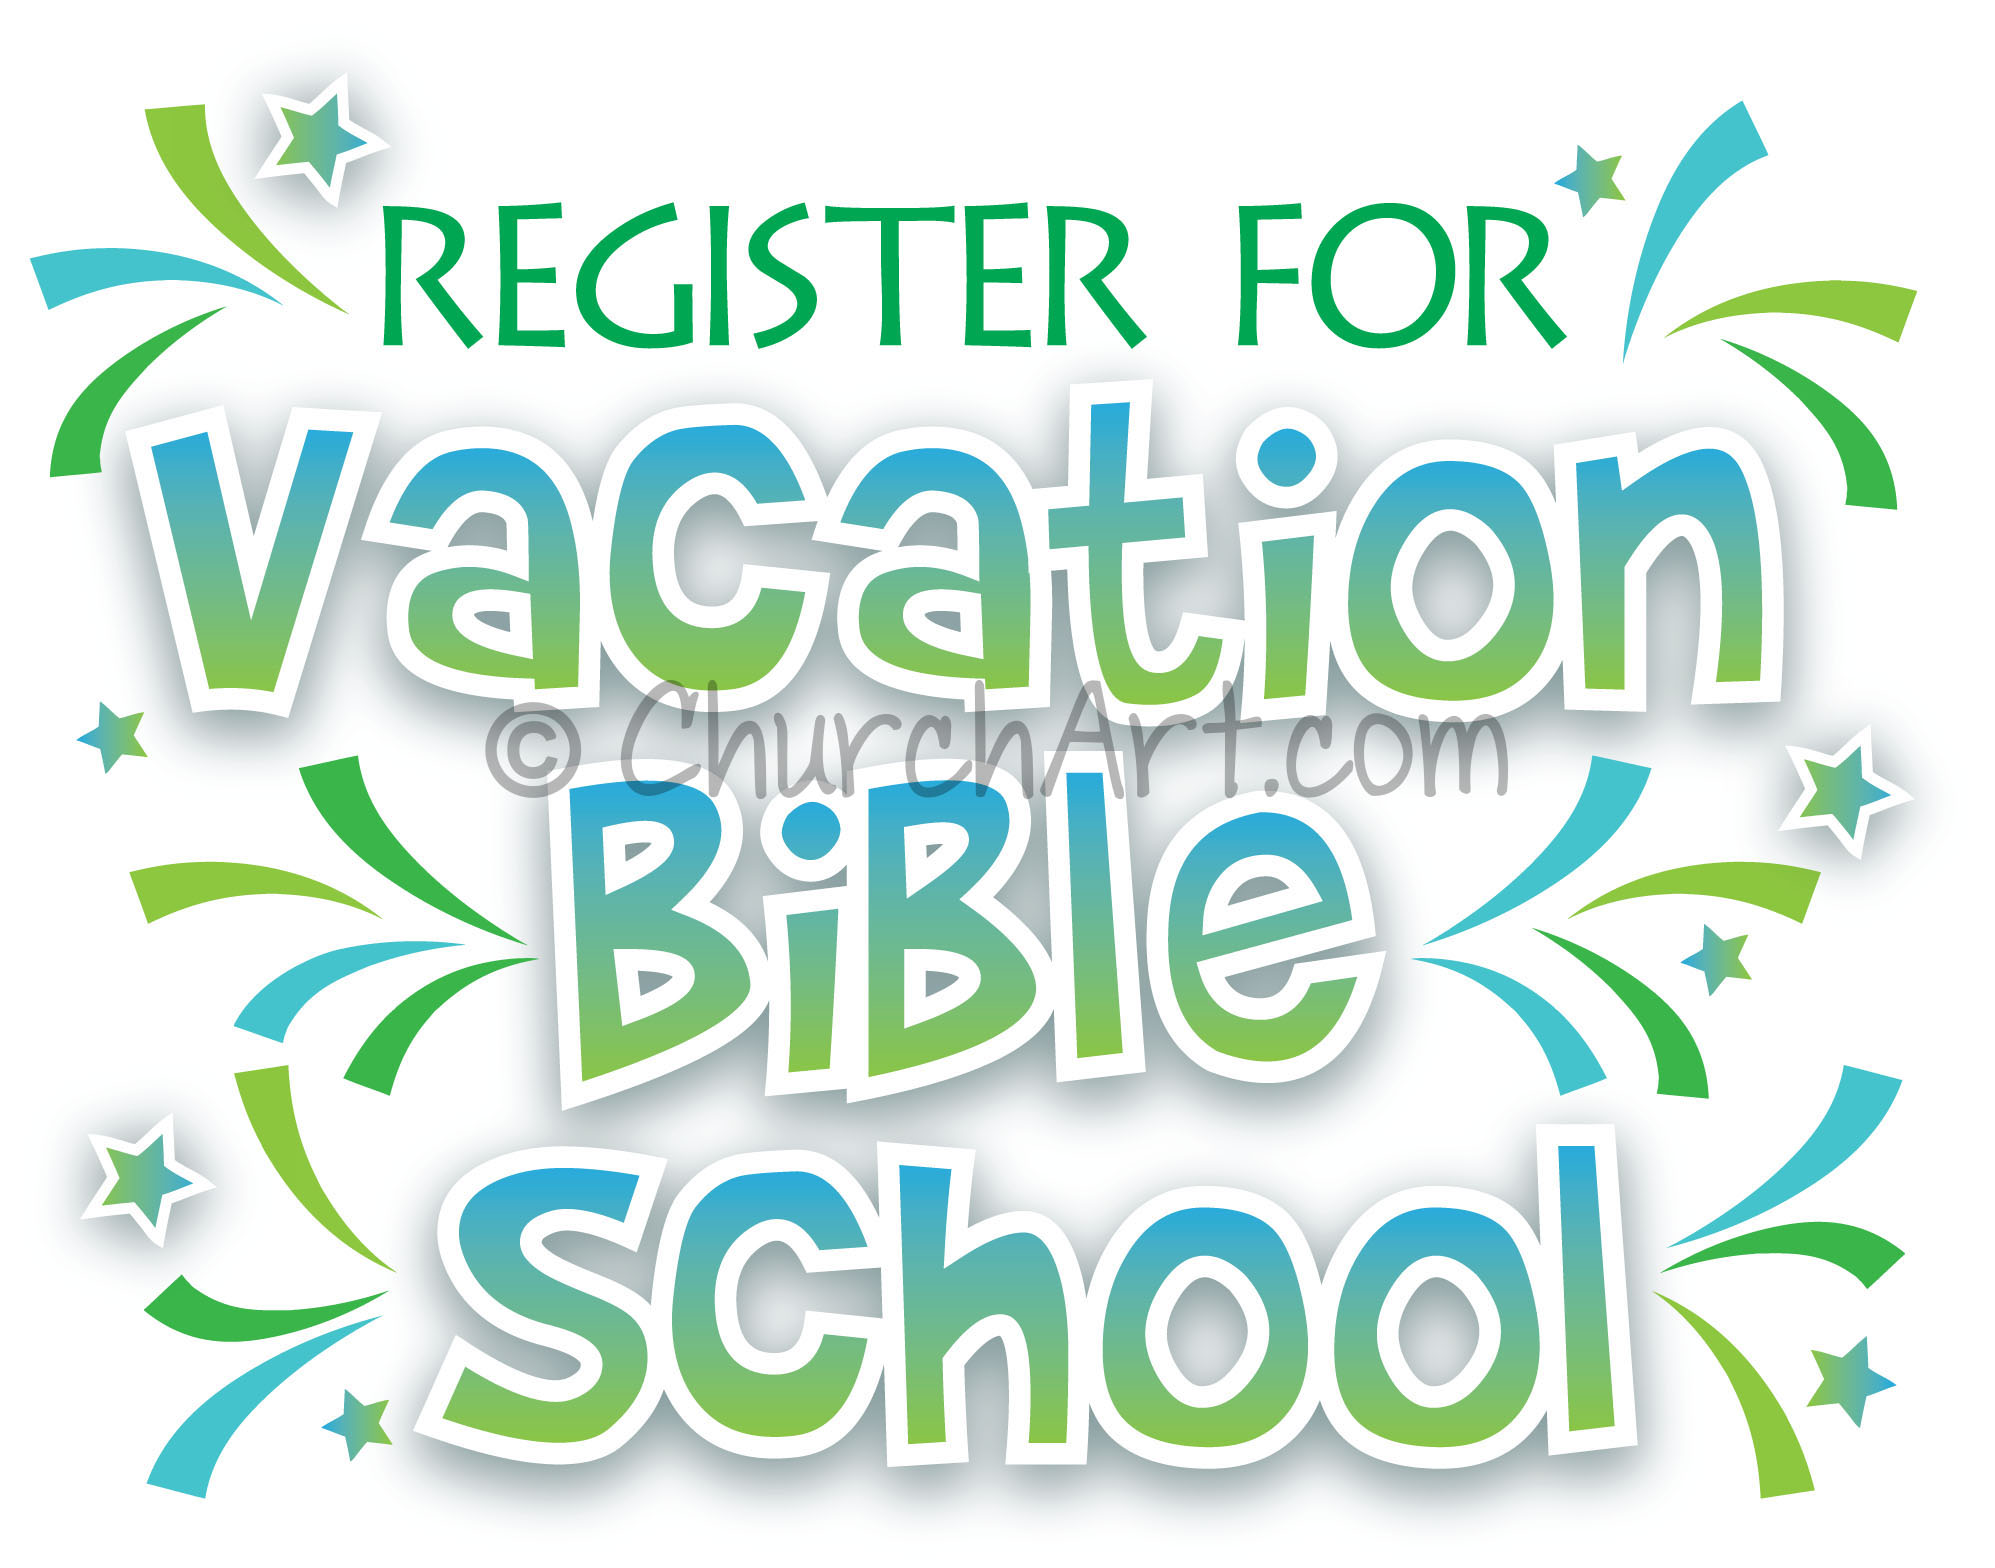 Vacation Bible School Clip-Art with Register for vacation bible school caption